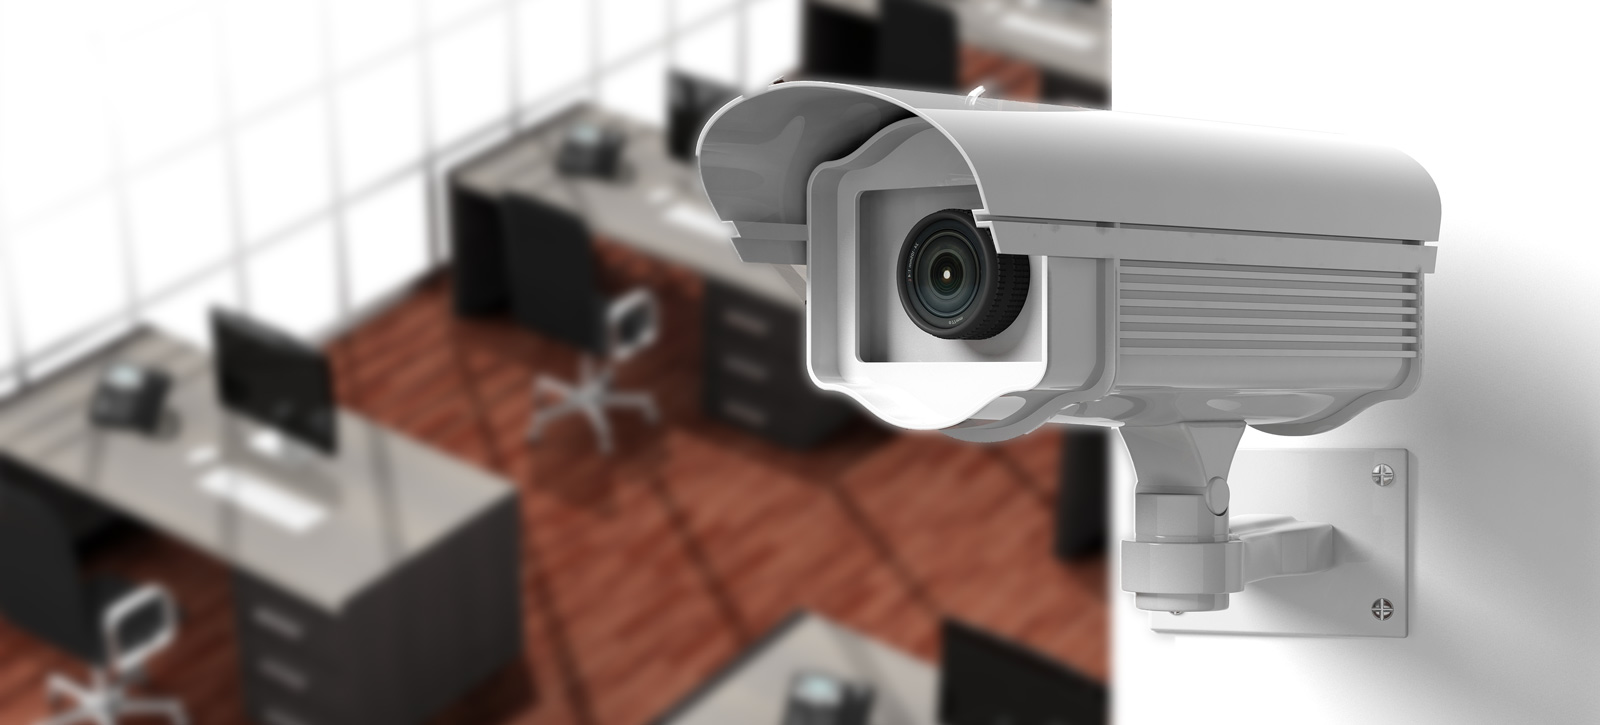 A Home Security System Can Benefit You And Your Family In Many Ways Systems Be Used To Help Protect Valuables Deter